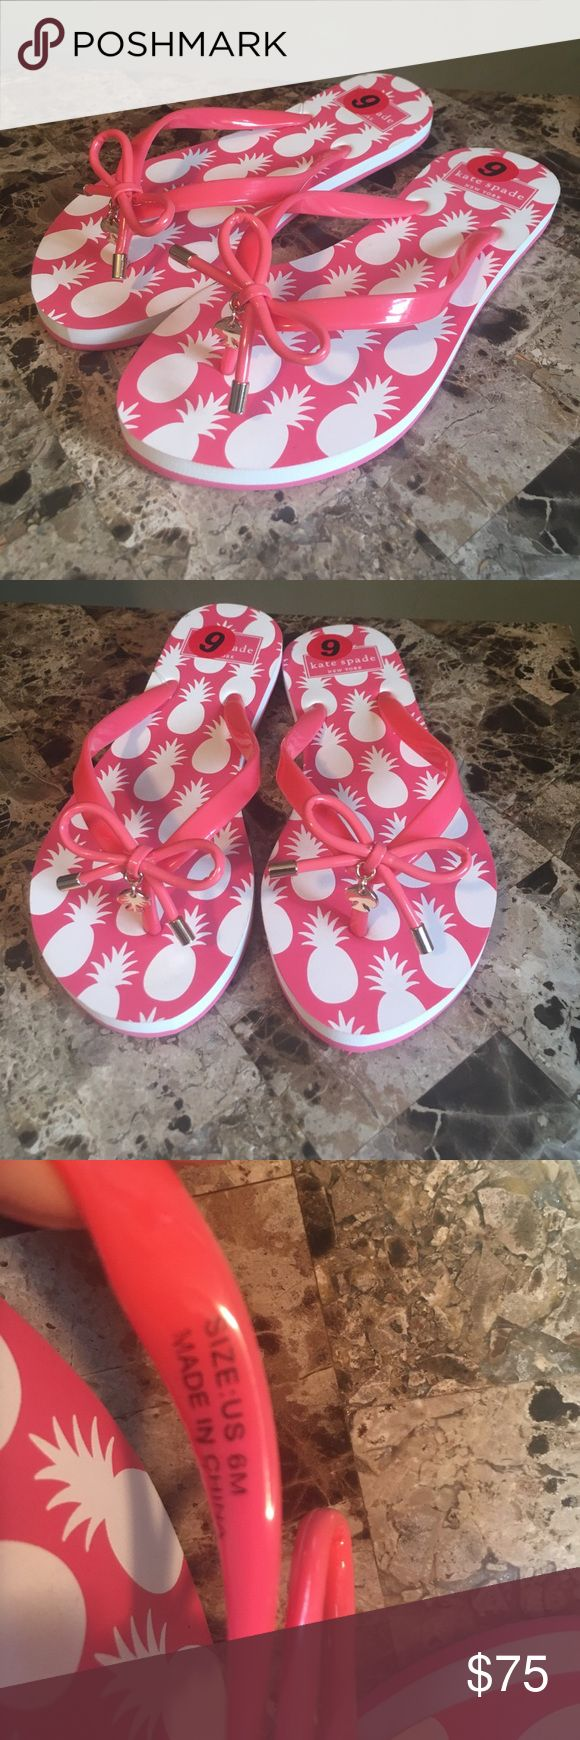 Kate Spate Coral pink Bow Charm Flip Flops size 6 New without box and tag Kate Spade Bow and charm Flip Flops size 6.   Color is a coral pink and white.  I bought the wrong size and have been sitting in the closet.  Has a small stain in the left heel, see last photo.  Please make a reasonable offer below and if agreed, I will discount it.  You have an hour after discount to purchase it to get discounted shipping only this weekend offered by posh. kate spade Shoes Sandals